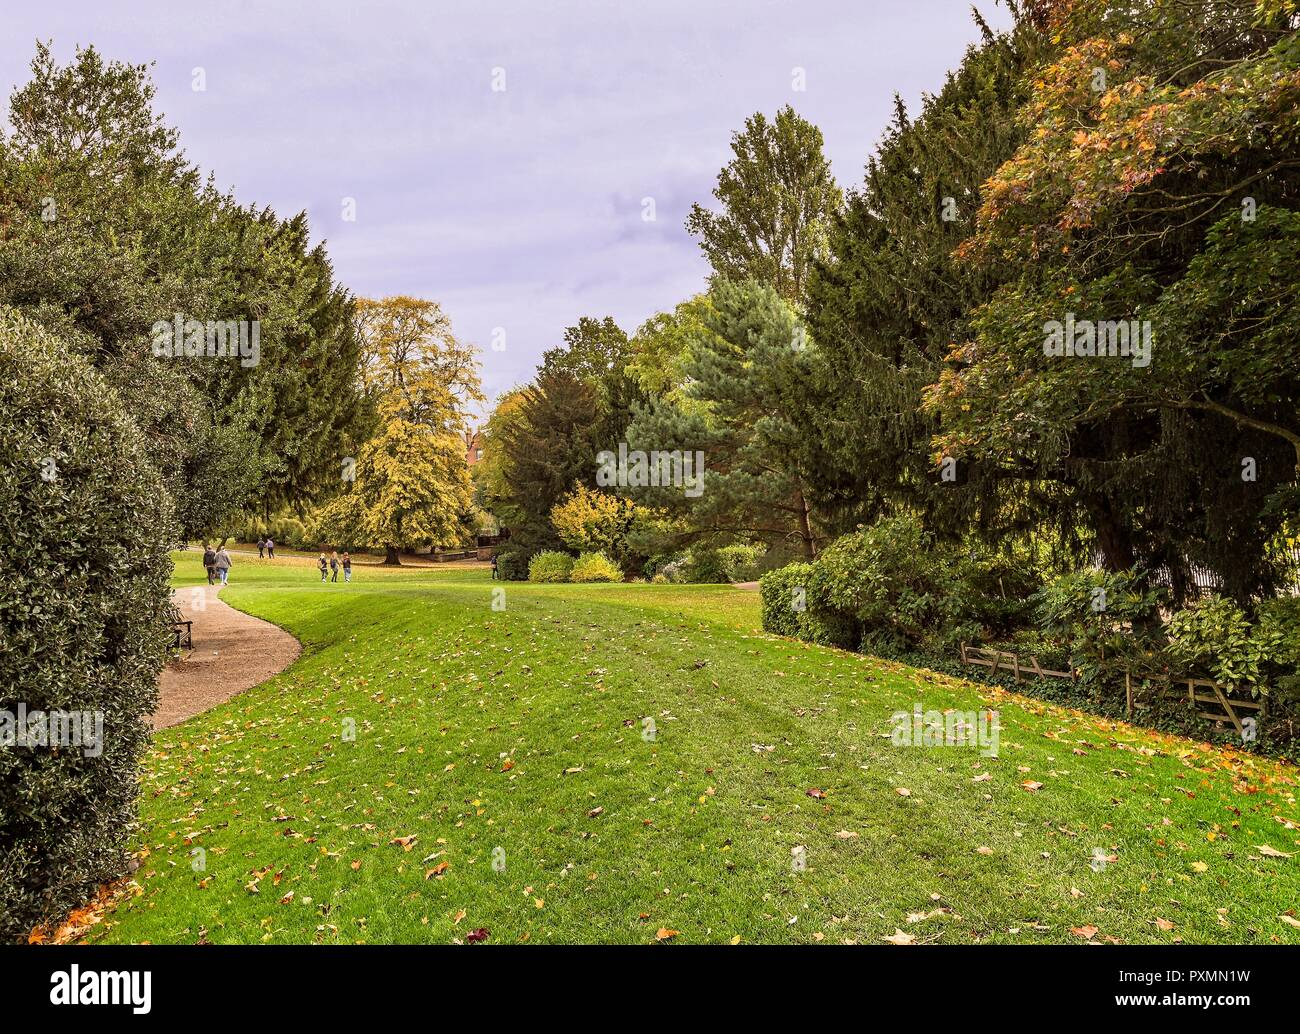 Early autumn in Museum Gardens in York. Leaves litter the ground as people walk through the gardens.  Trees surround the scene. Stock Photo